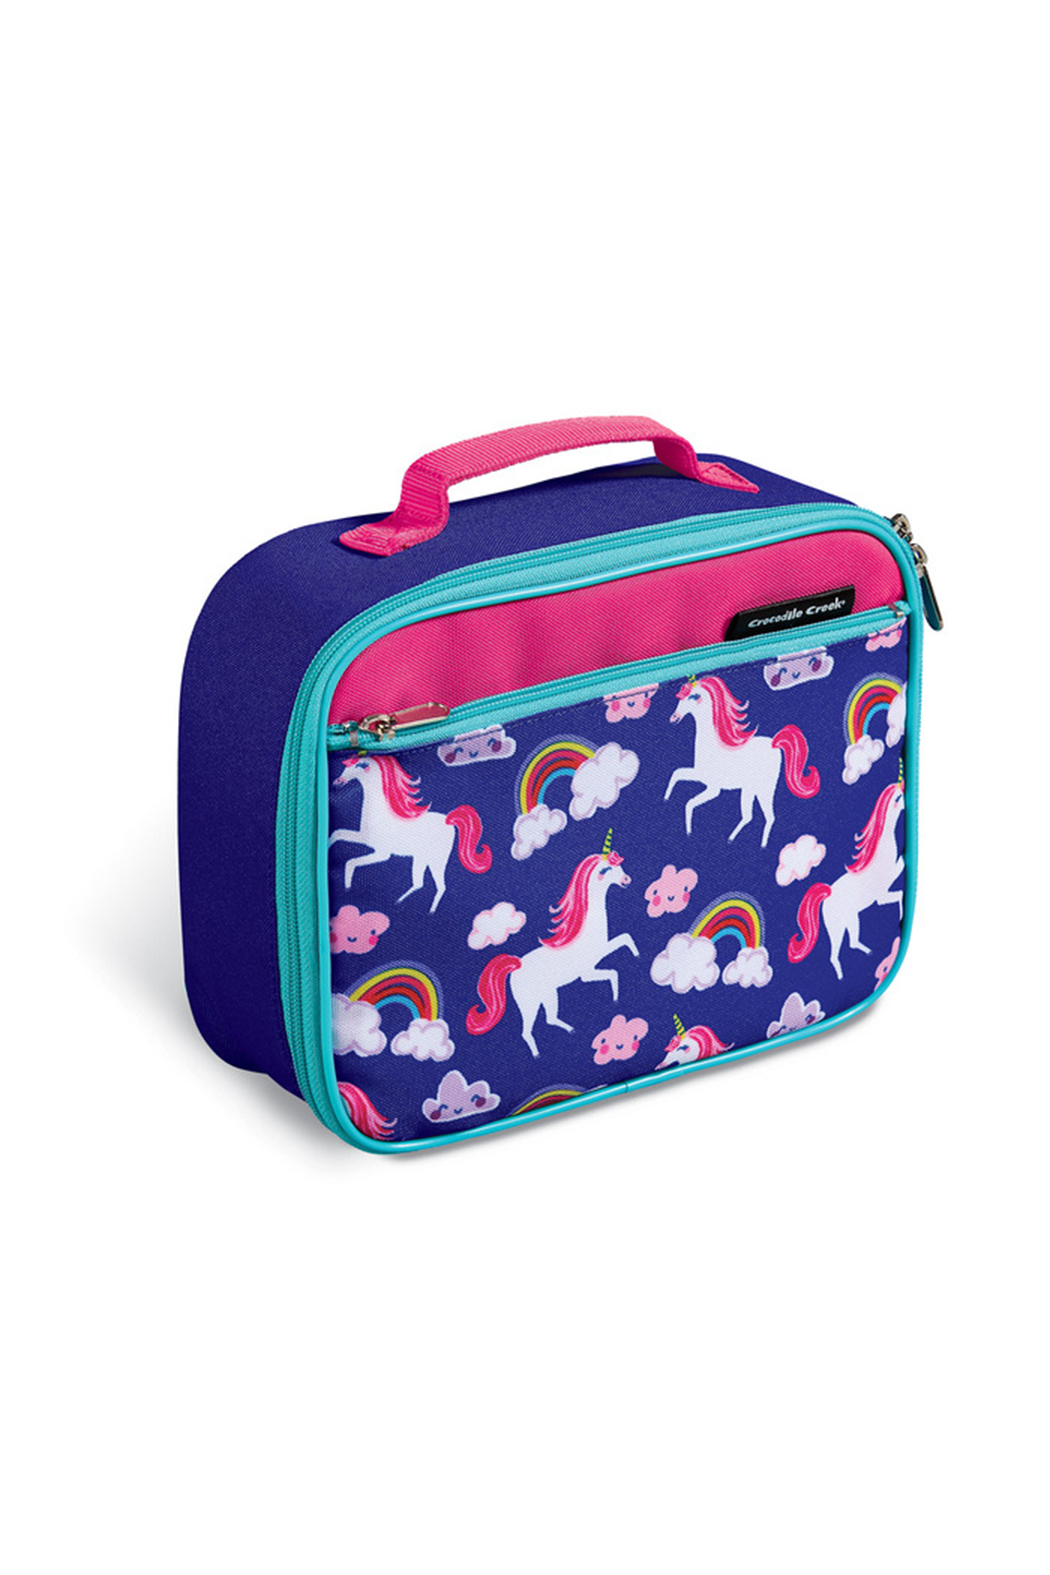 Crocodile Creek Unicorn Lunchbox - Main Image